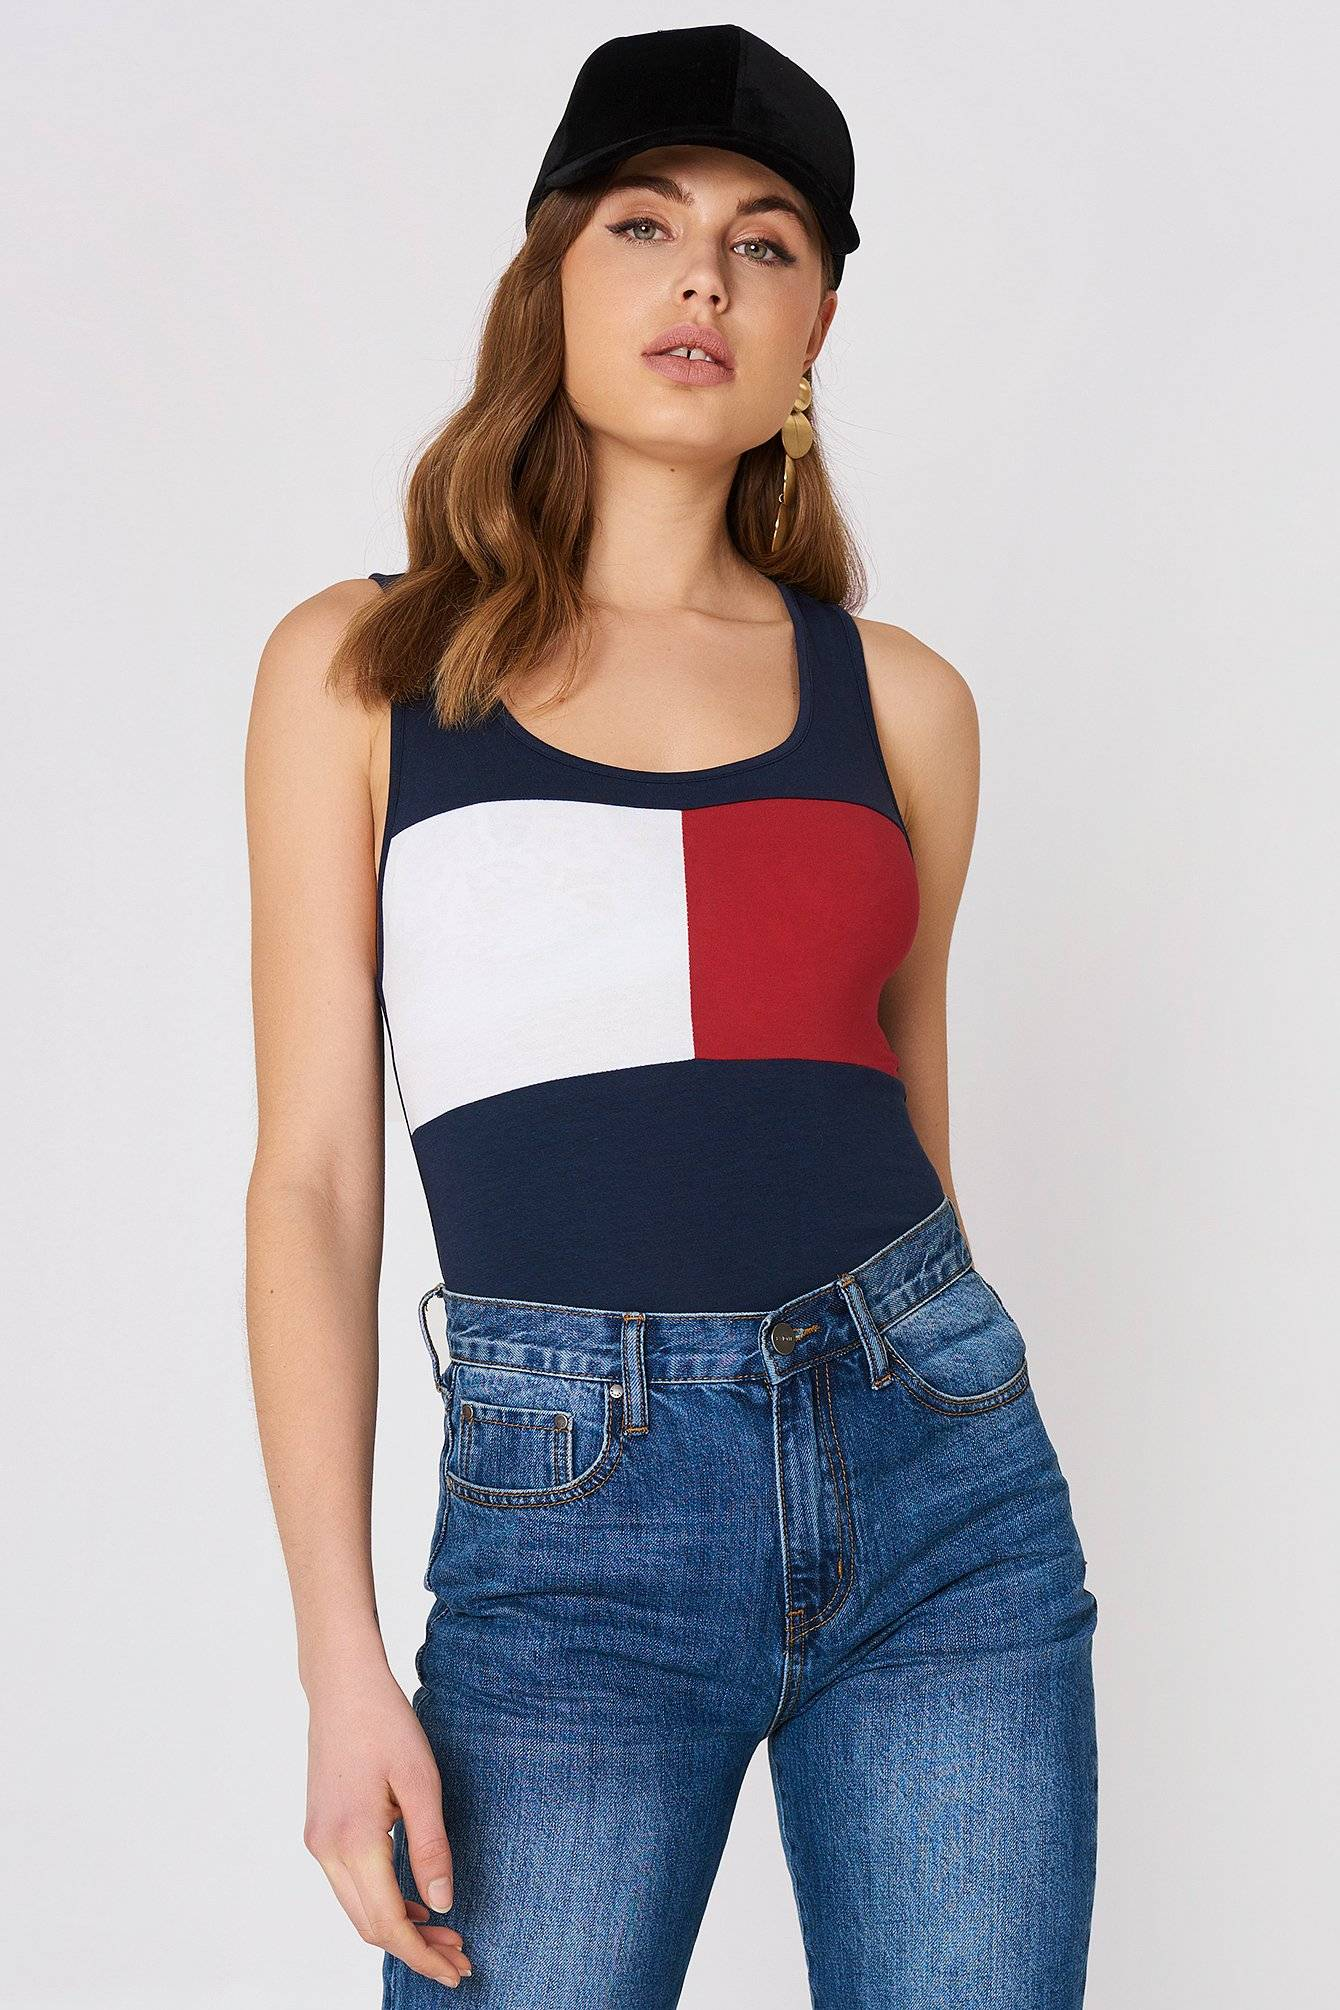 Tommy Hilfiger Tank Top - Multicolor,Navy